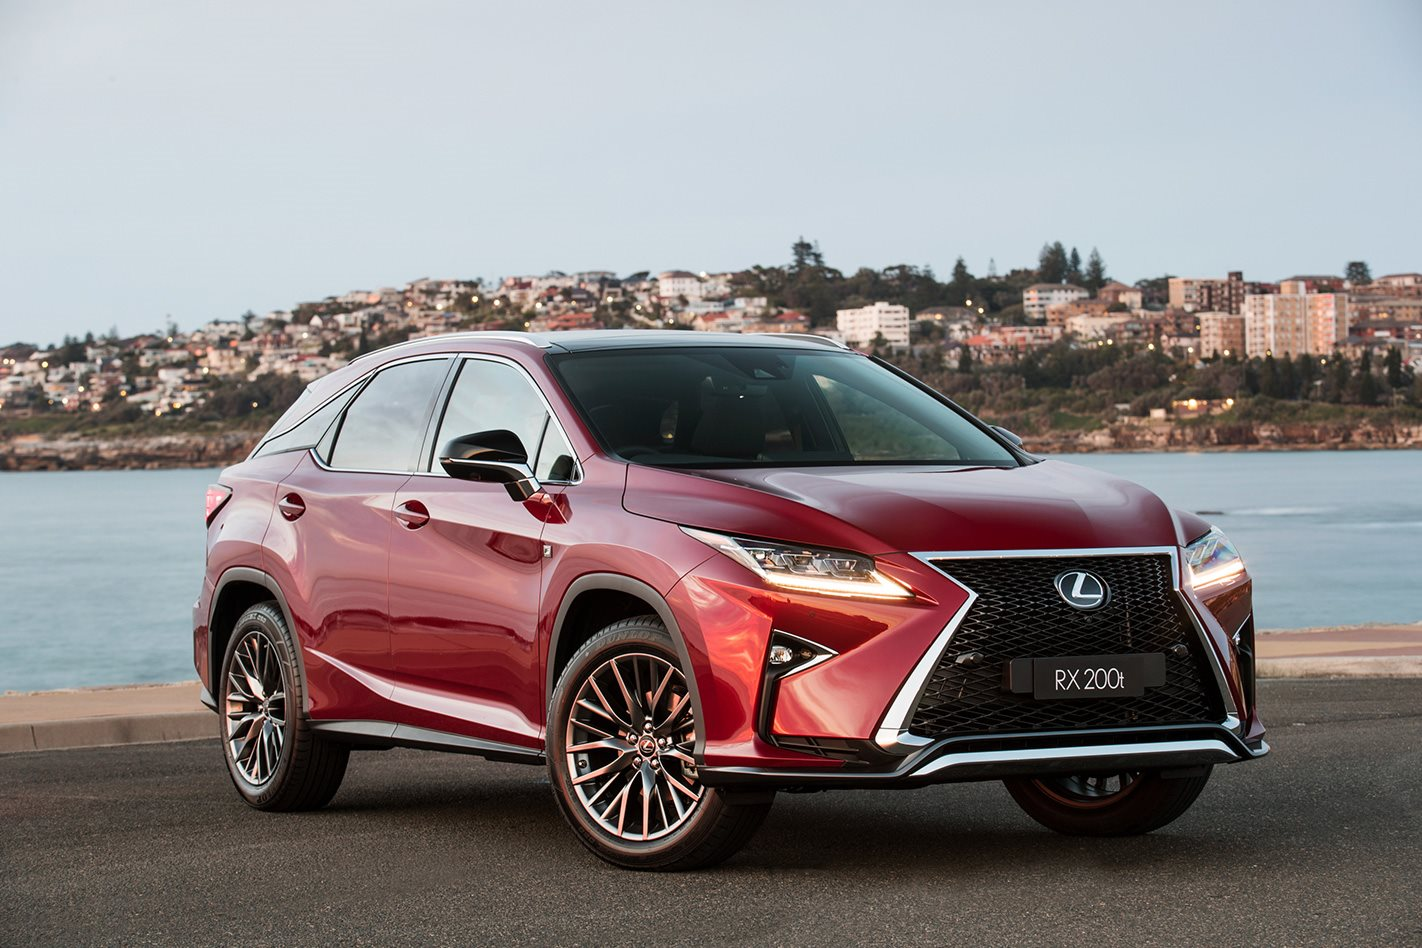 Updated 2017 tokyo motor show preview what to expect for Tokyo motor show lexus